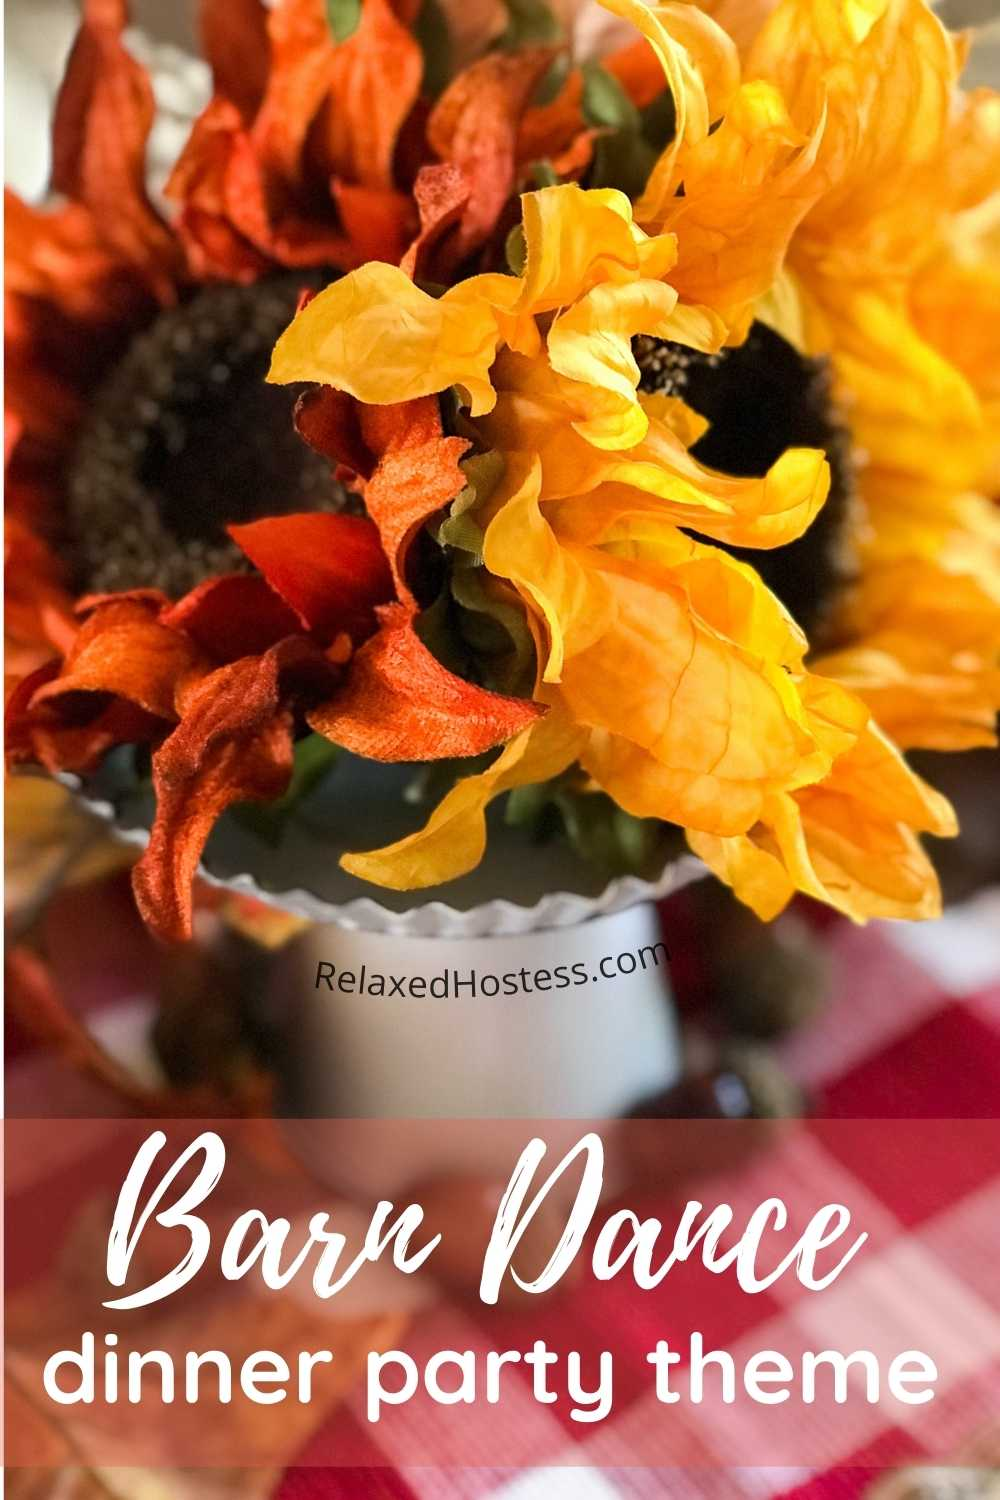 Barn Dance Dinner Party Theme: three sunflowers on a white washed stand. Red and white checkered table runner. Acorns next to the stand.